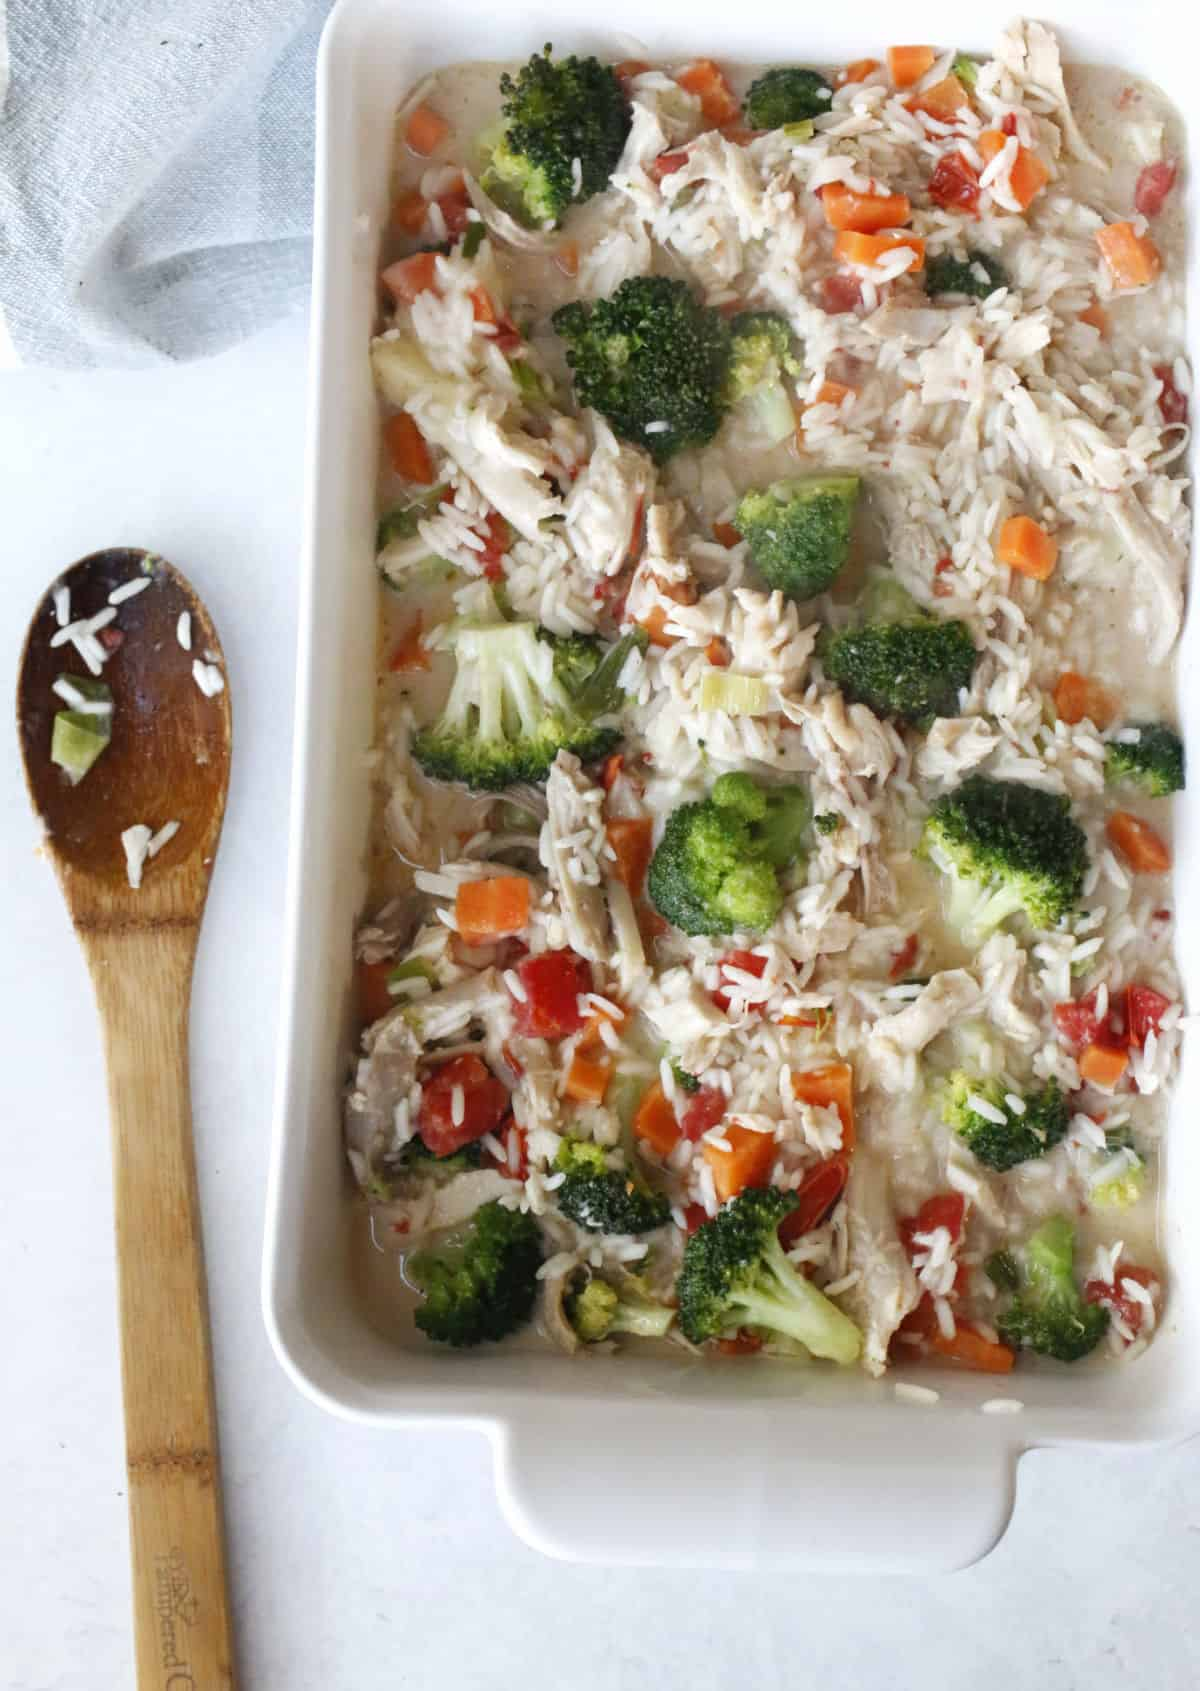 a baking dish filled with chicken and rice casserole ready to bake